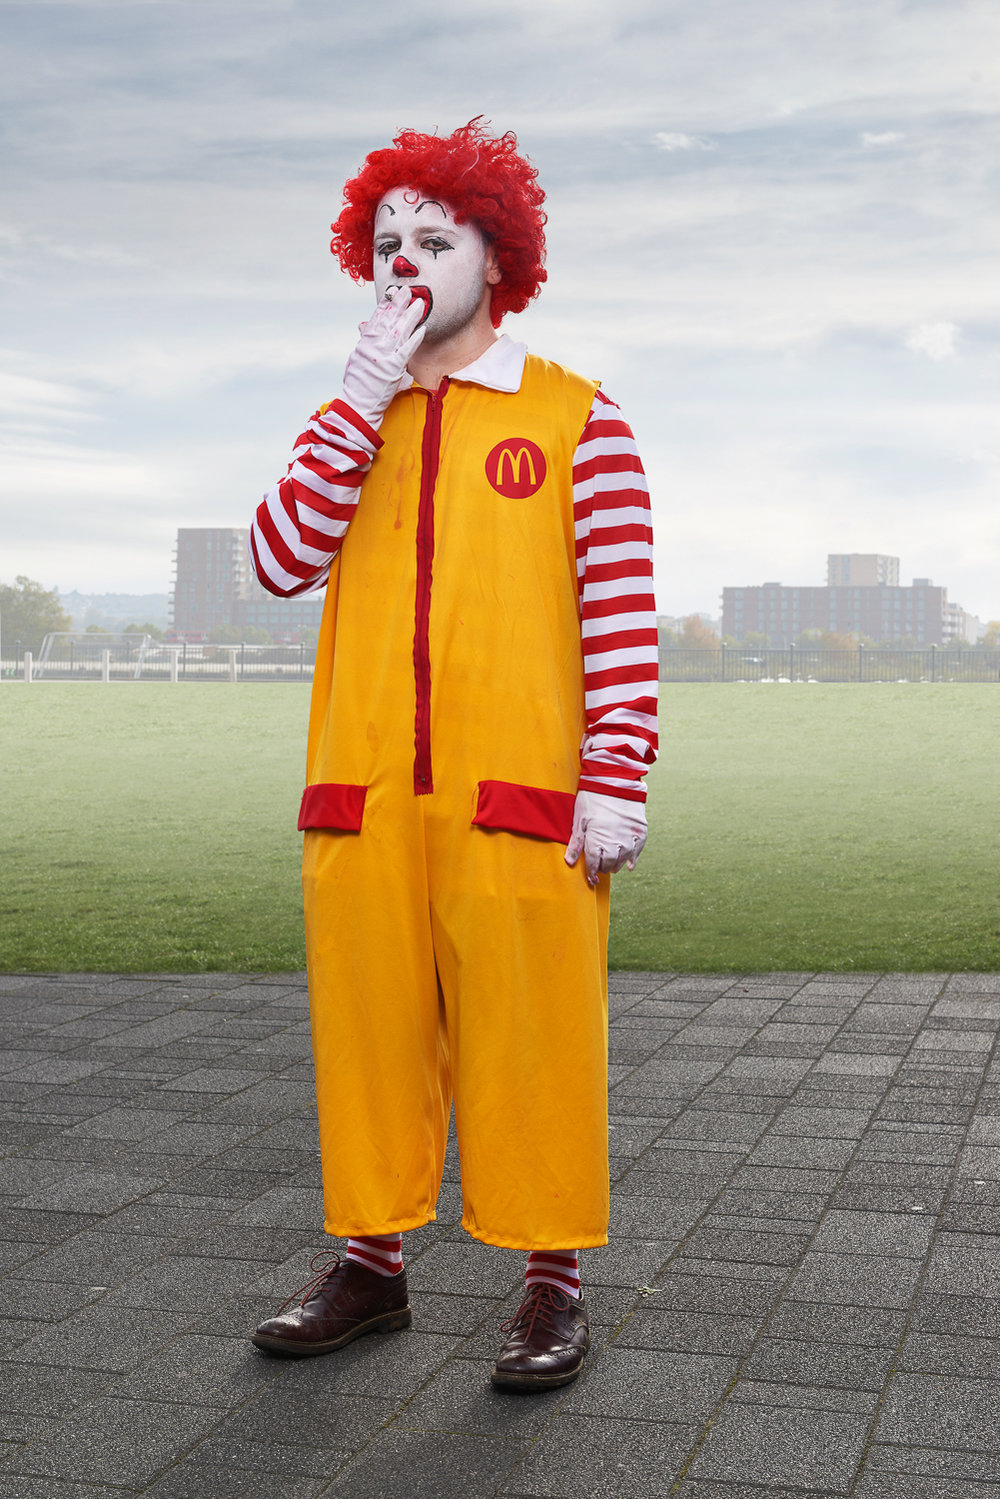 Personal Project - Cosplayers - Ronald McDonald